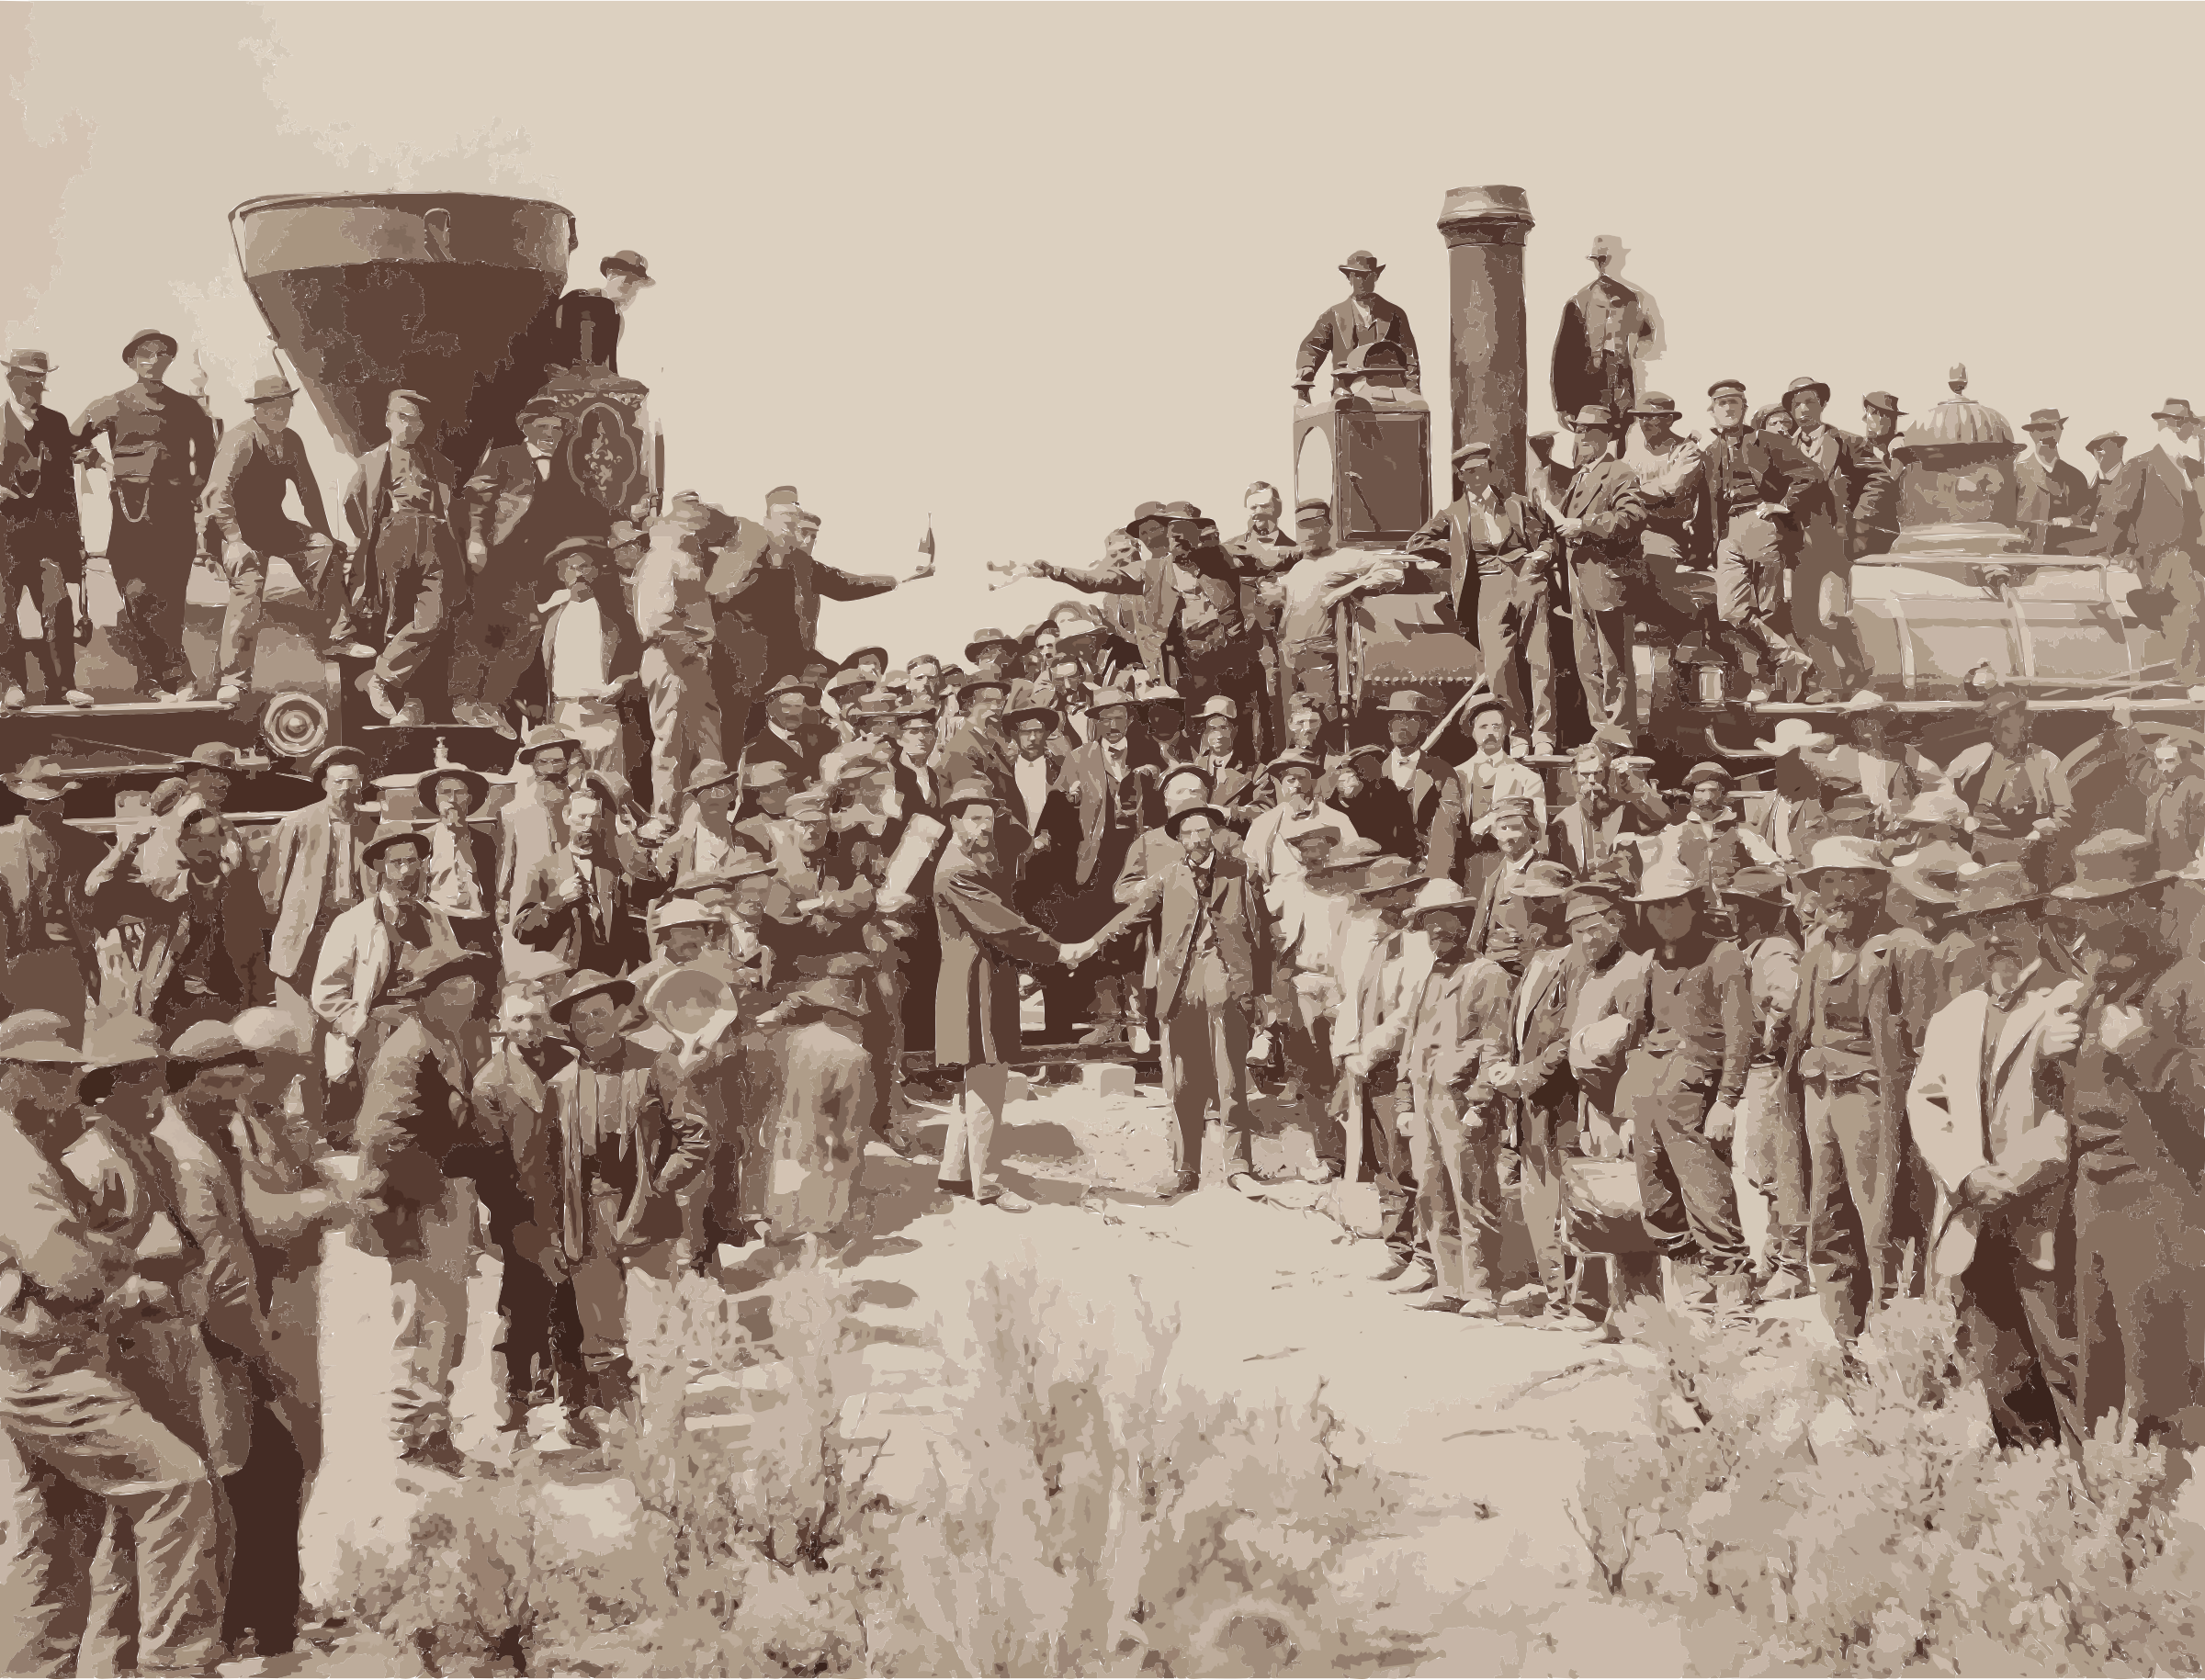 East and West Shaking hands at the laying of last rail Union Pacific Railroad - Restoration by 5n9sst+earkddiows40g